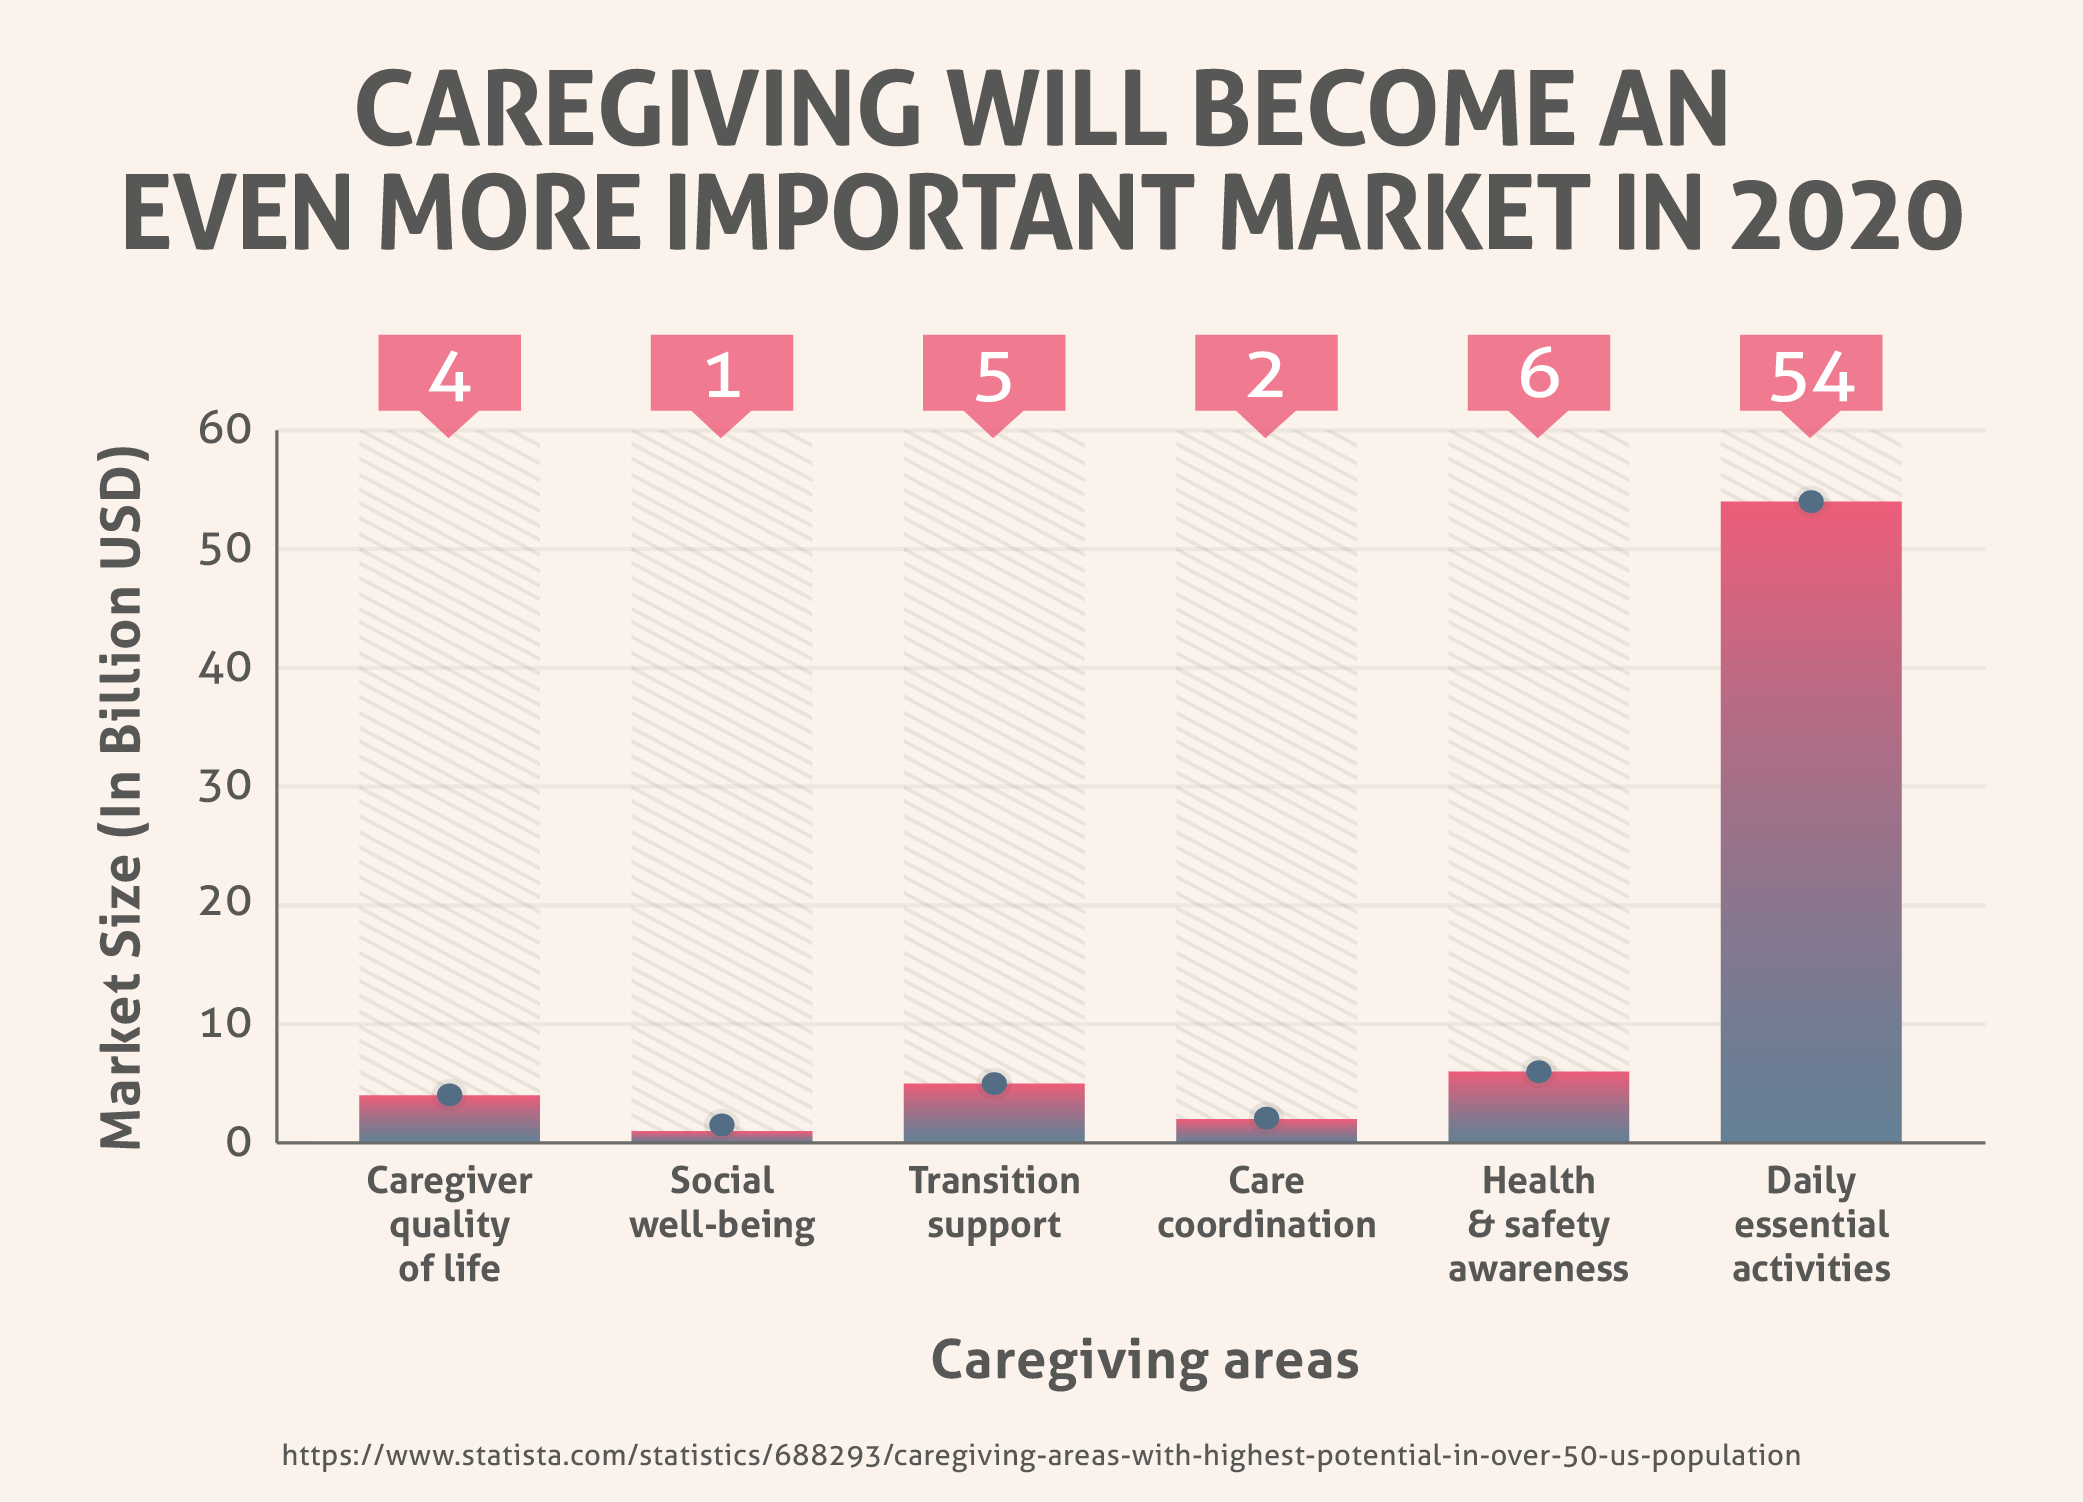 Caregiving Will Become An Even More Important Market in 2020